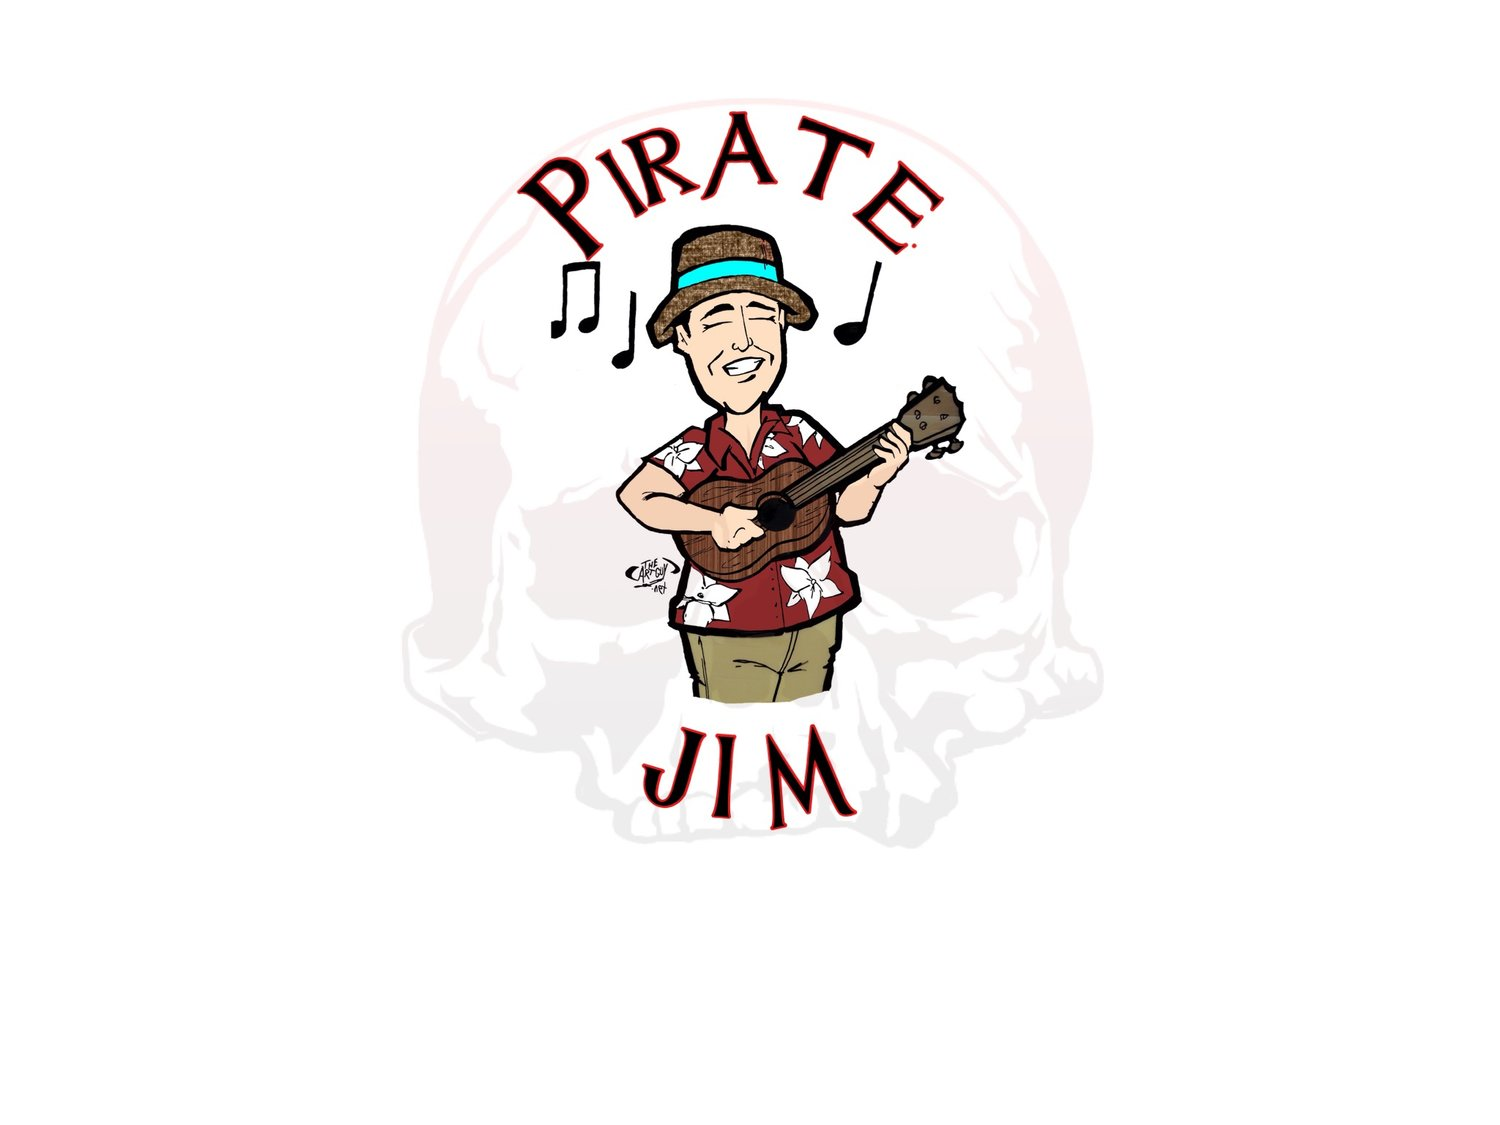 Pirate Jim